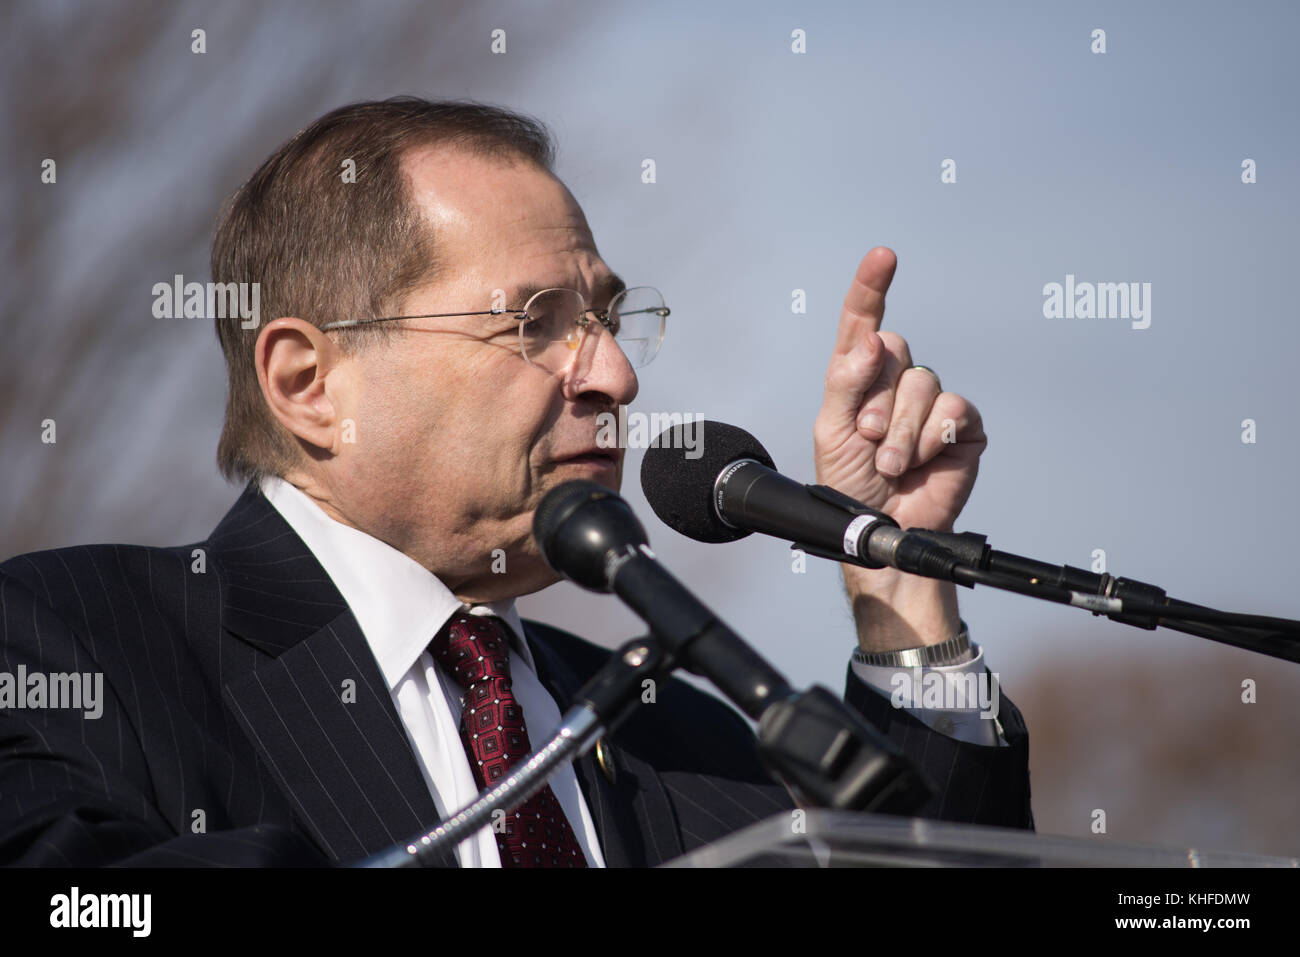 Rep. Jerry Nadler, (D-NY) speaks against GOP tax bill on Capitol Hill. Stock Photo